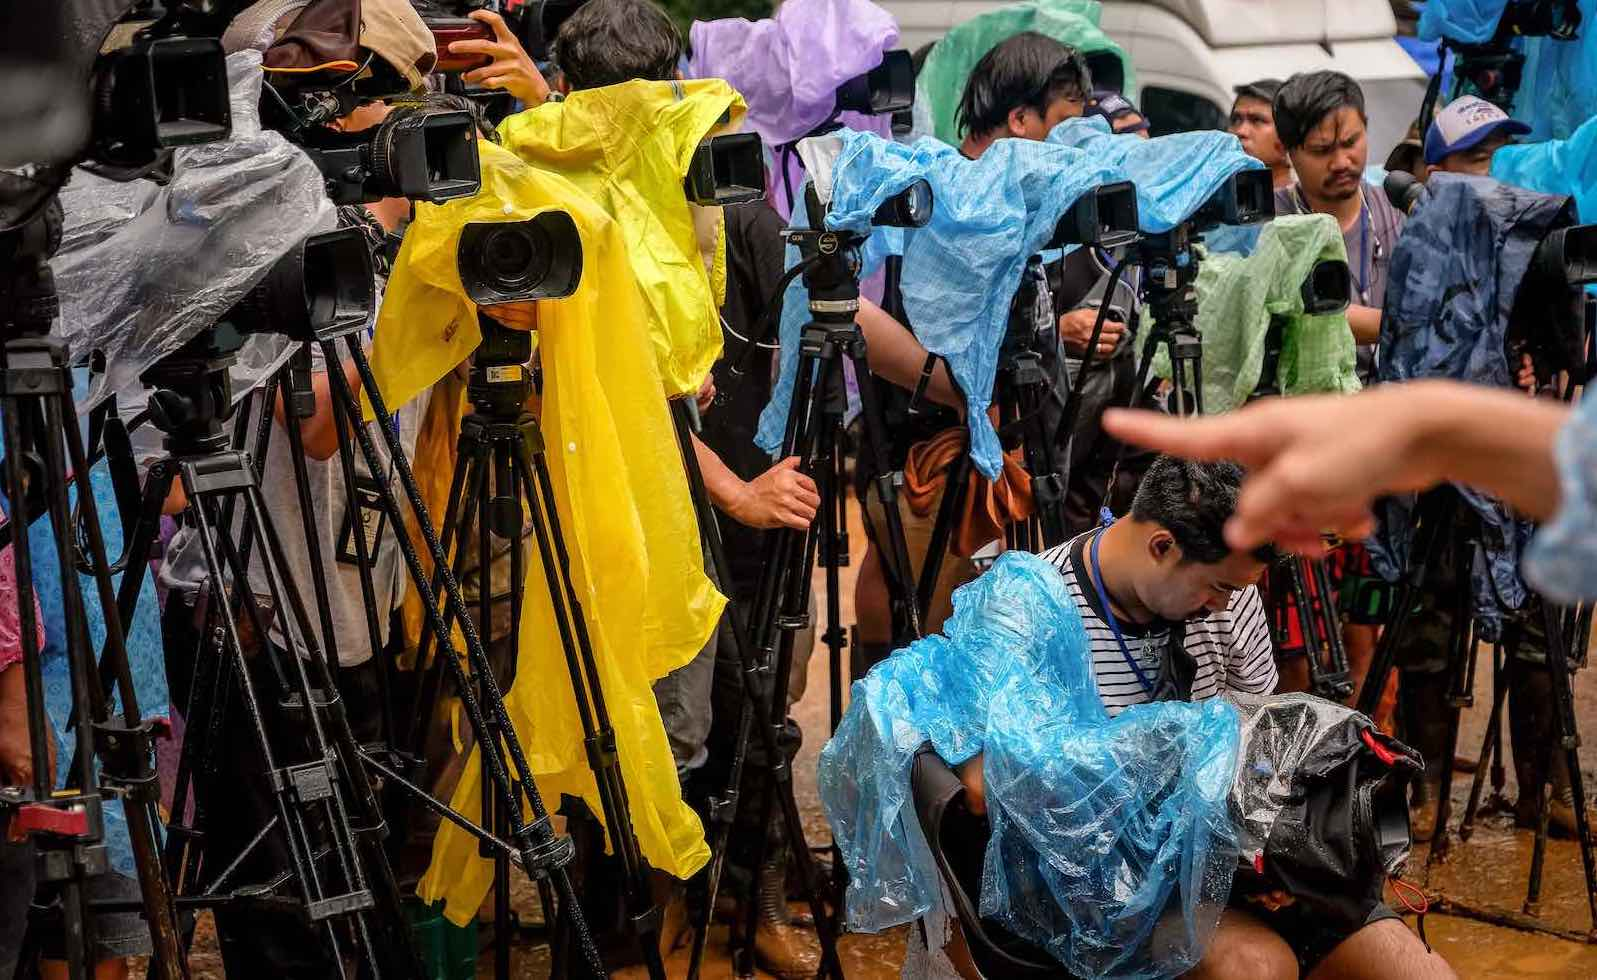 Waiting for news outside the cave at Tham Luang Nang Non, Thailand (Photo: Linh Pham/Getty)